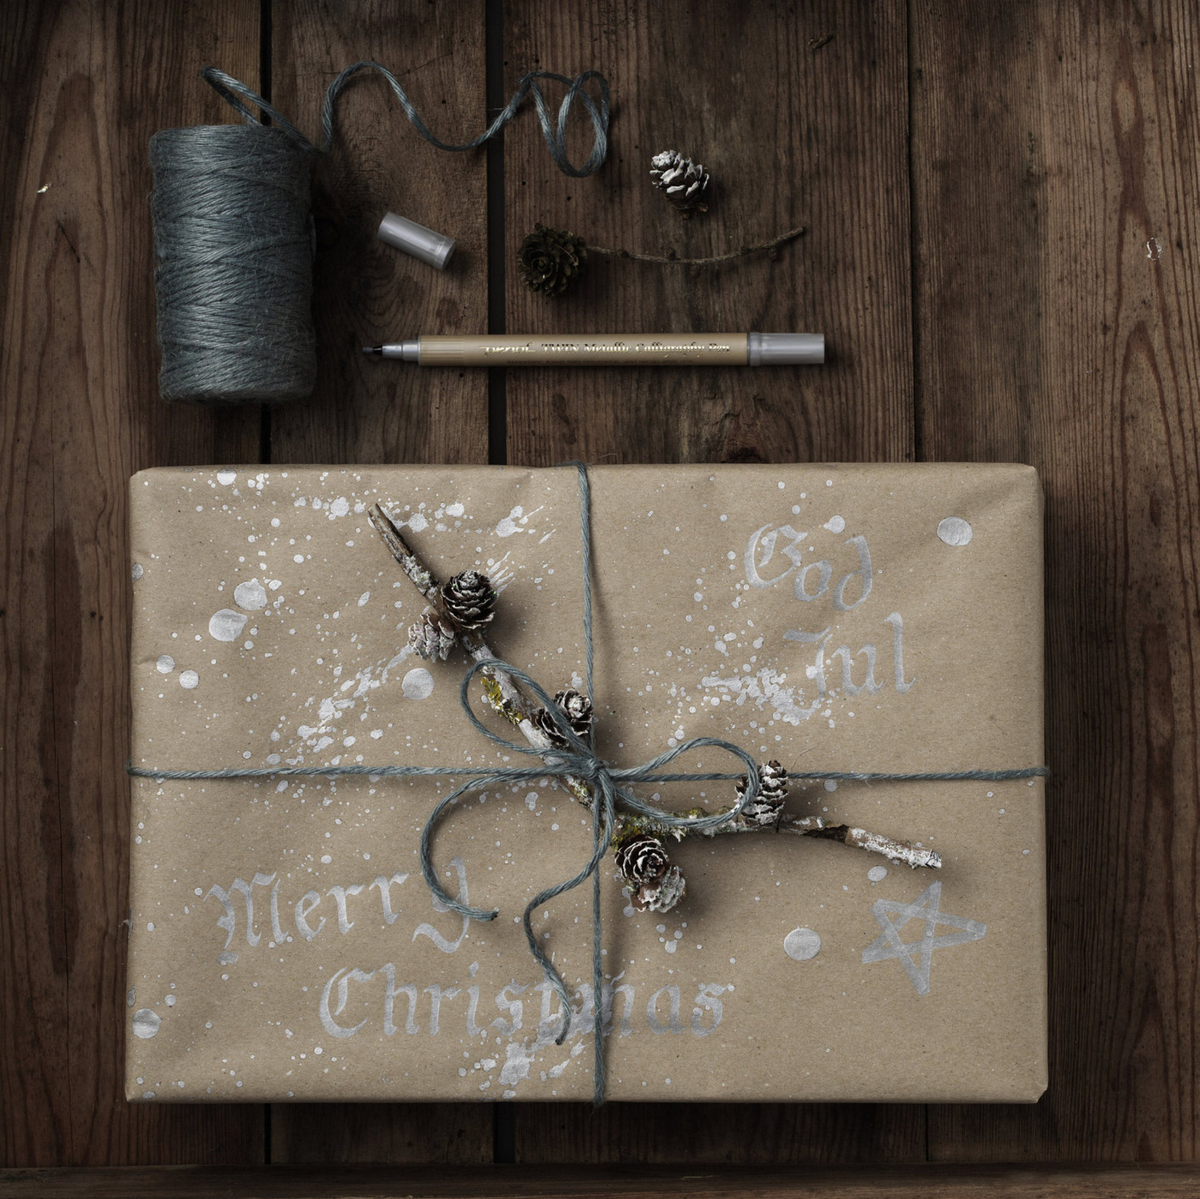 Decorate your Christmas paper